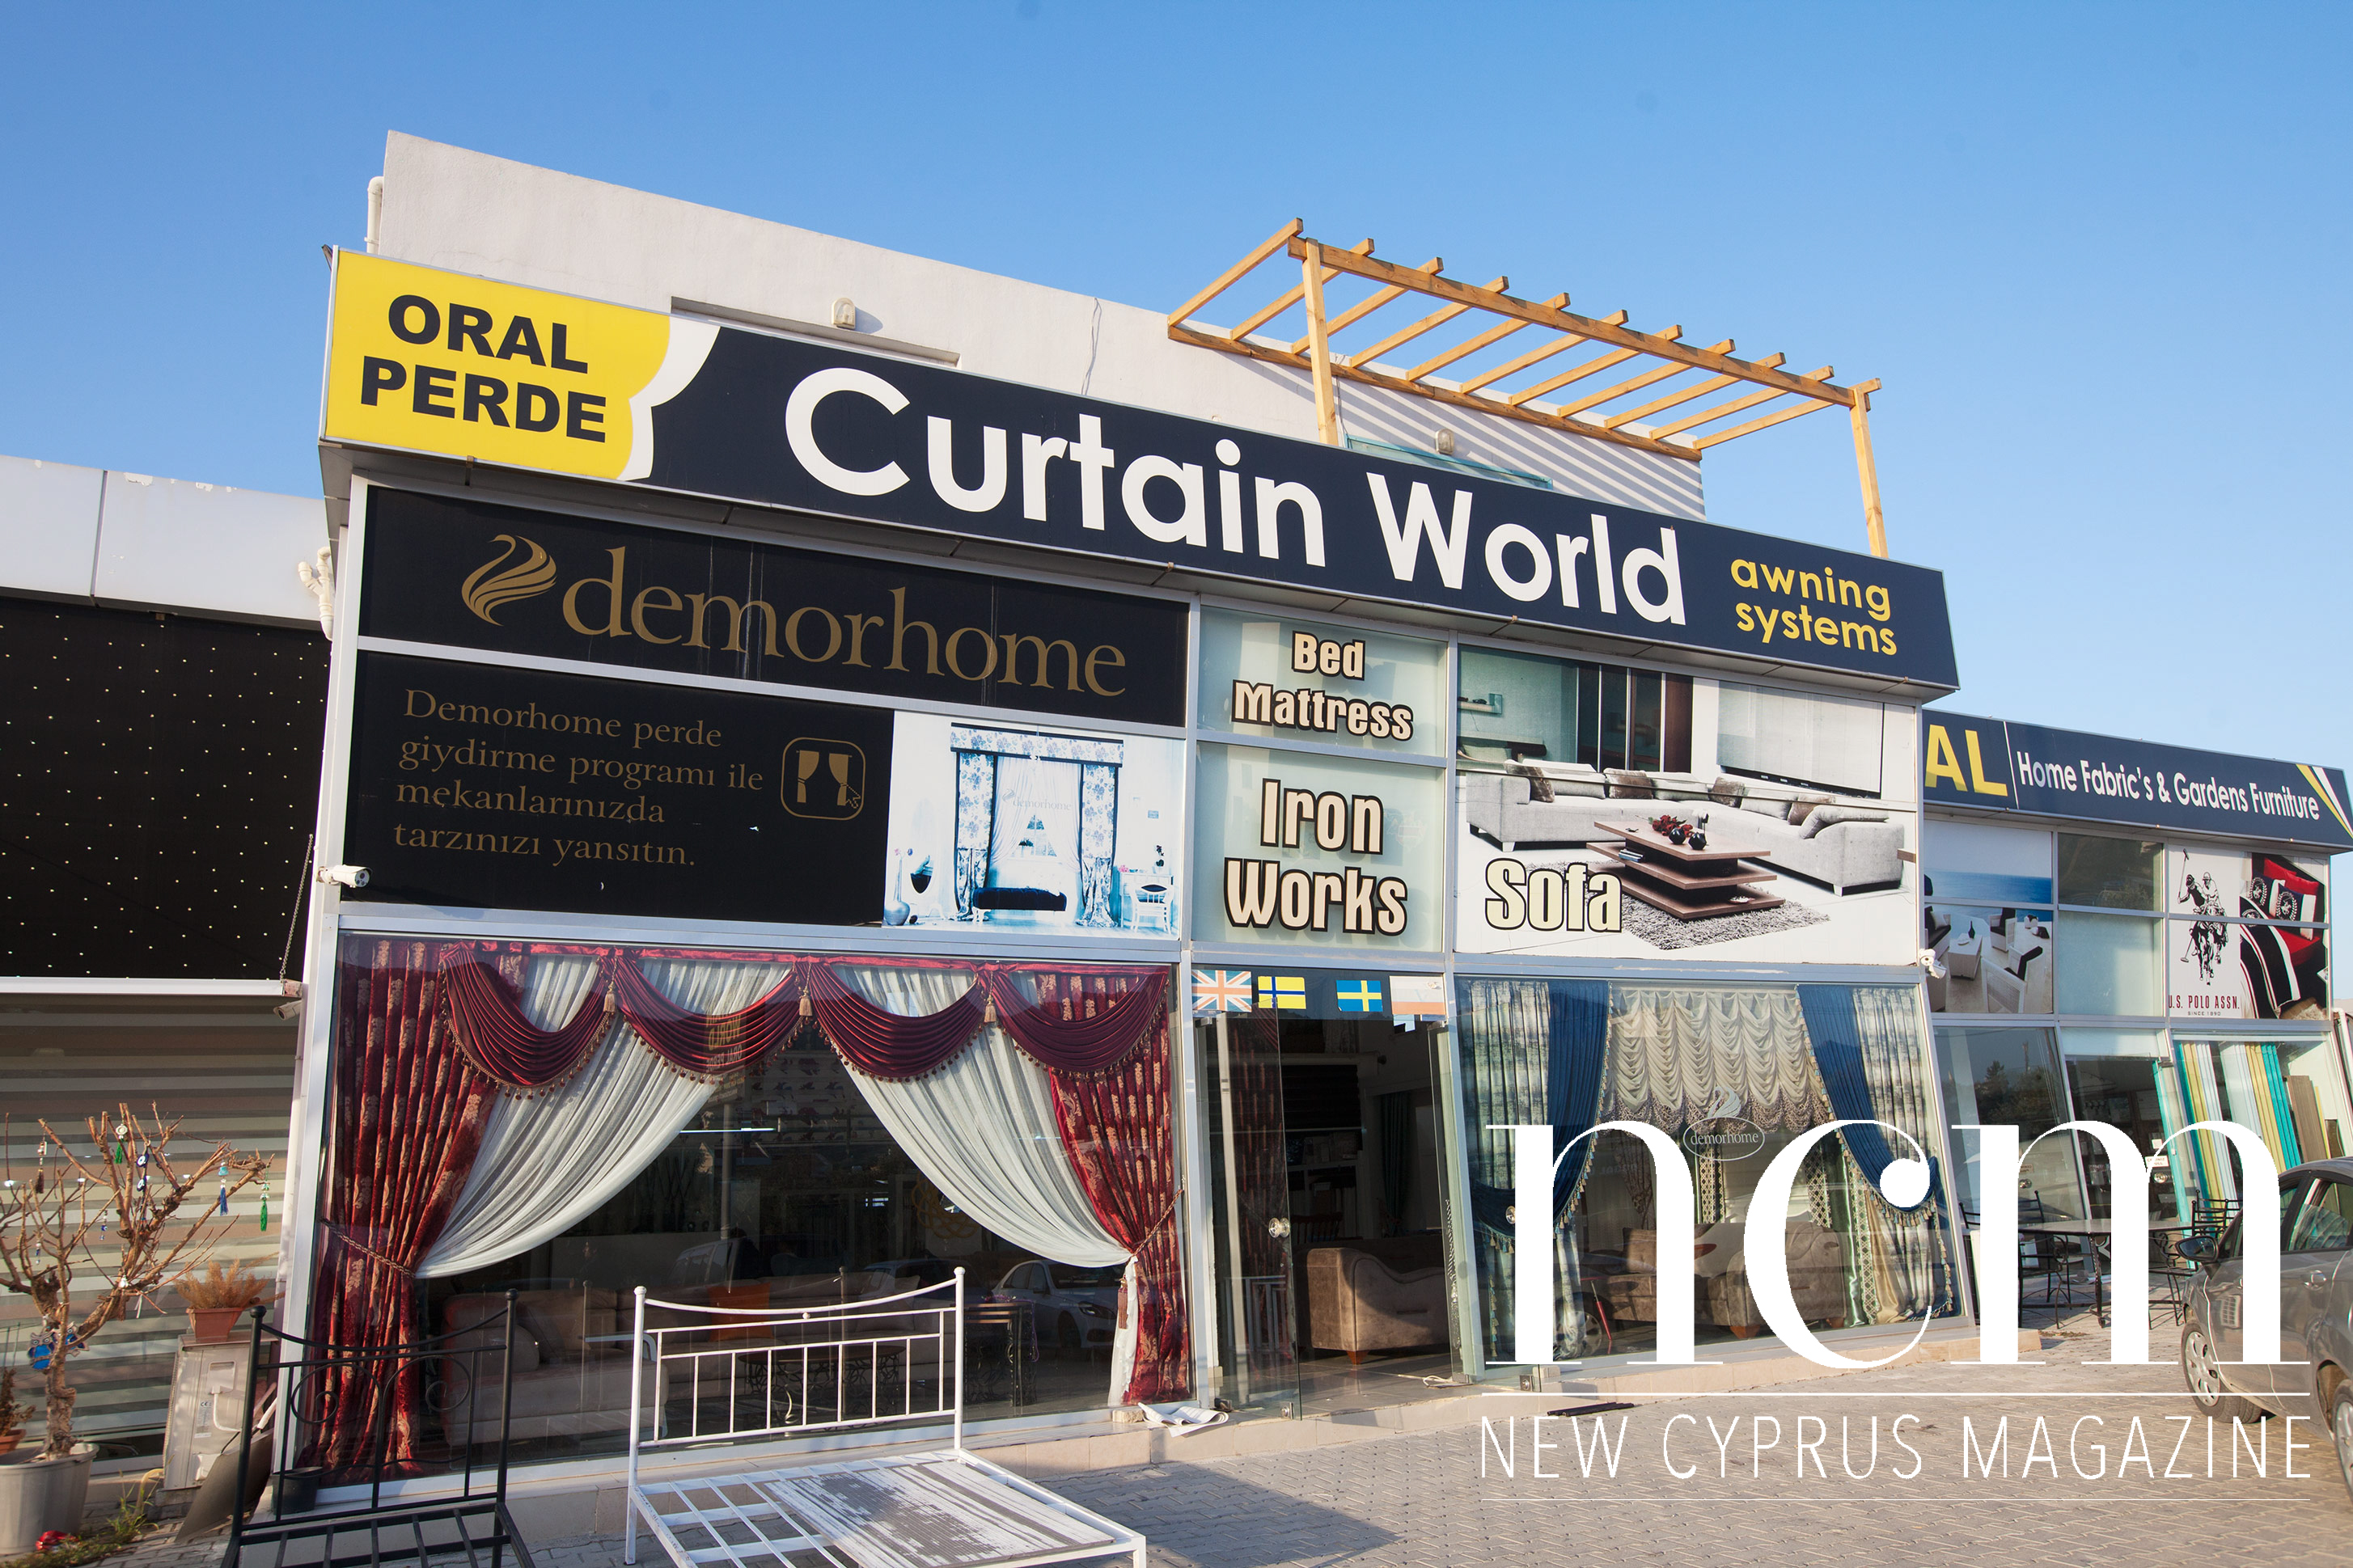 Oral Perde Curtain World